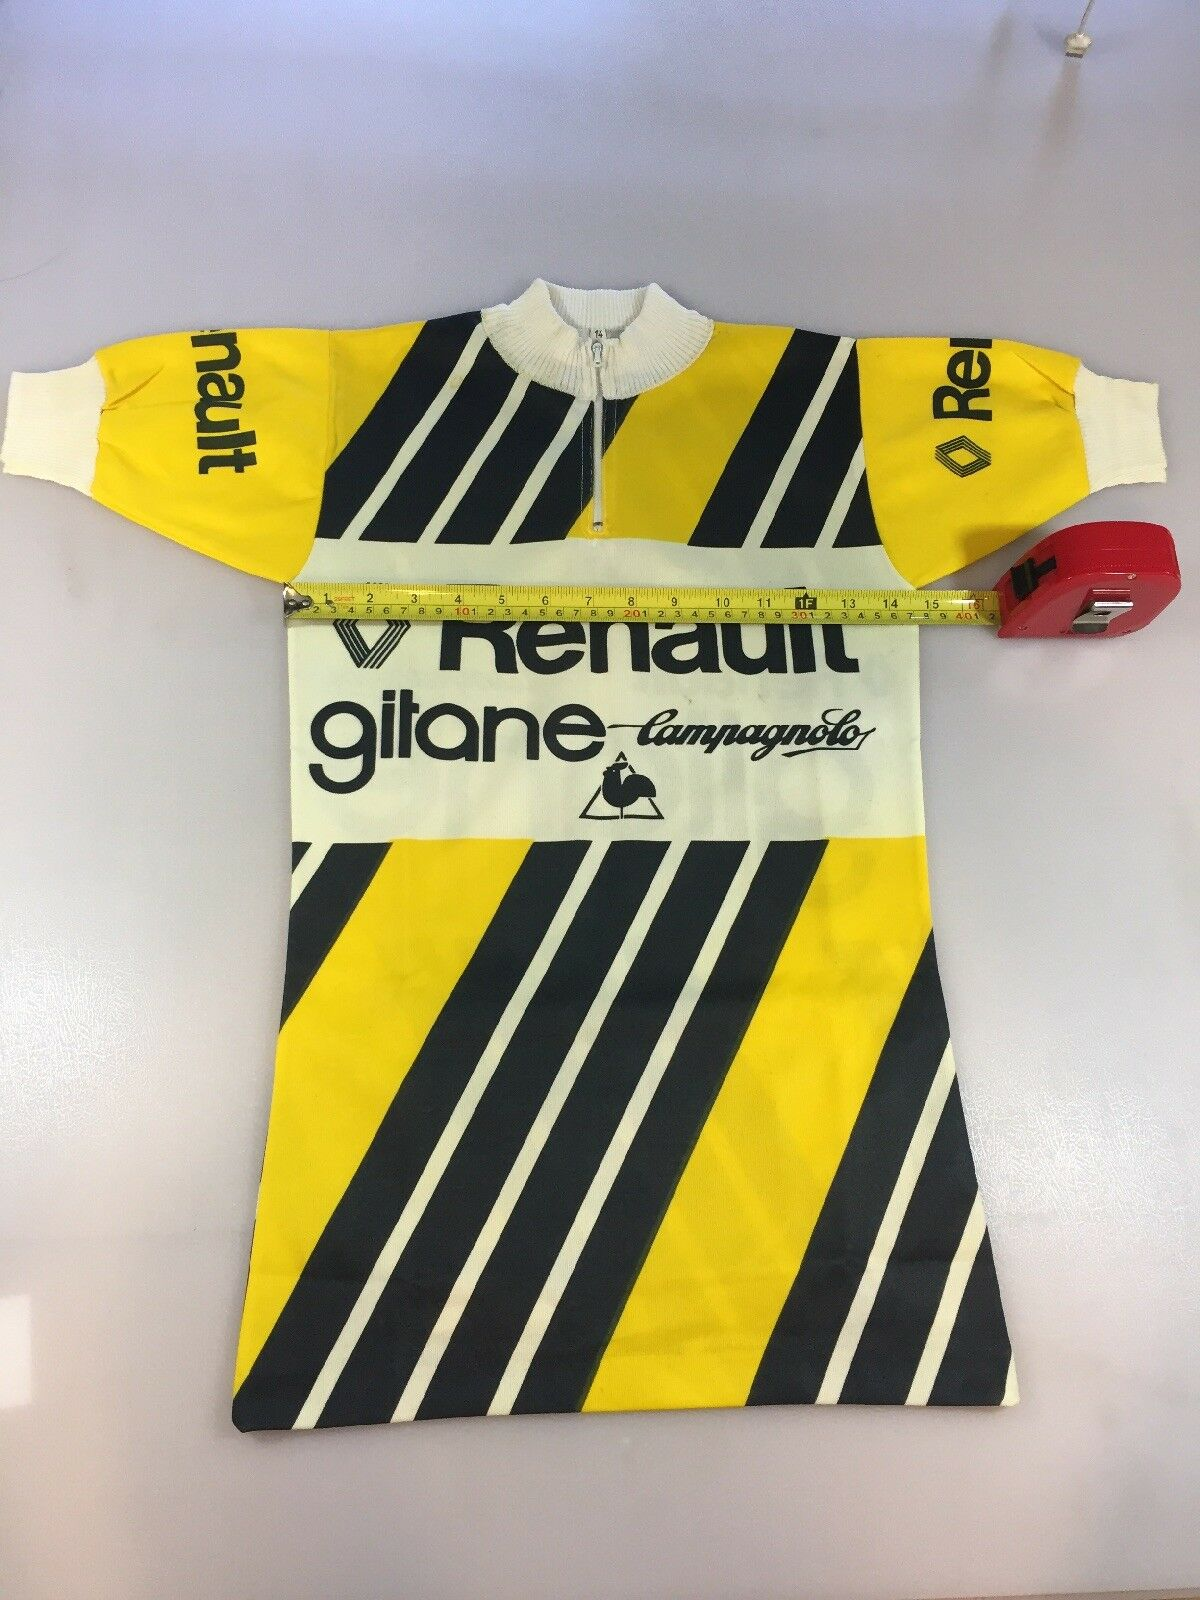 Renault Gitane Campagnolo Vintage Cycling Jersey Size 14 (6242)